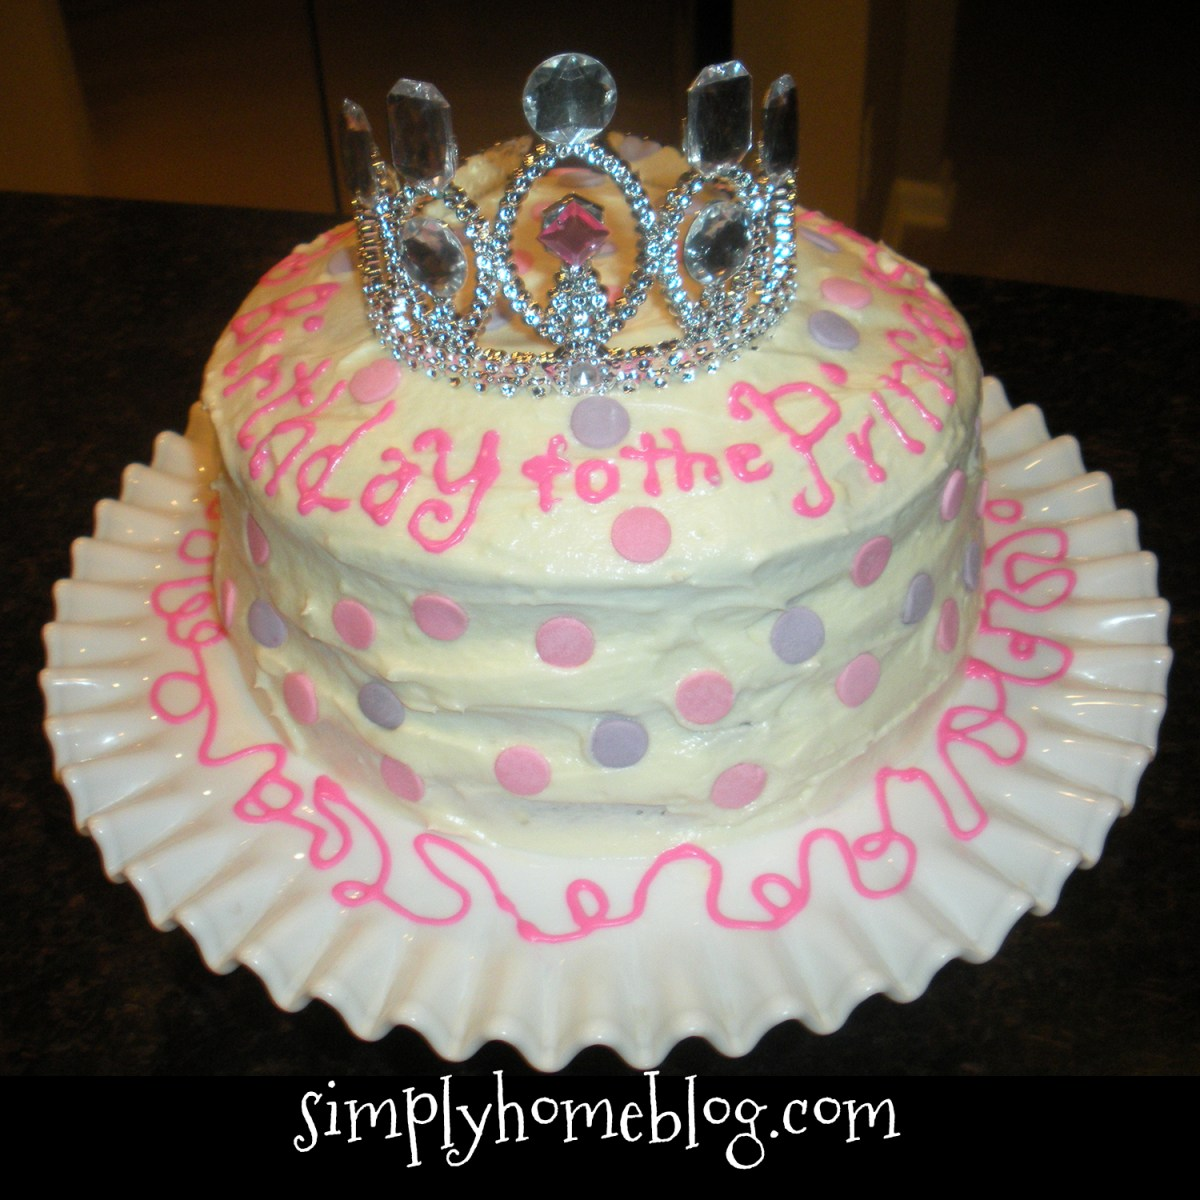 An Easy Princess Cake for a Cute Princess Celebration